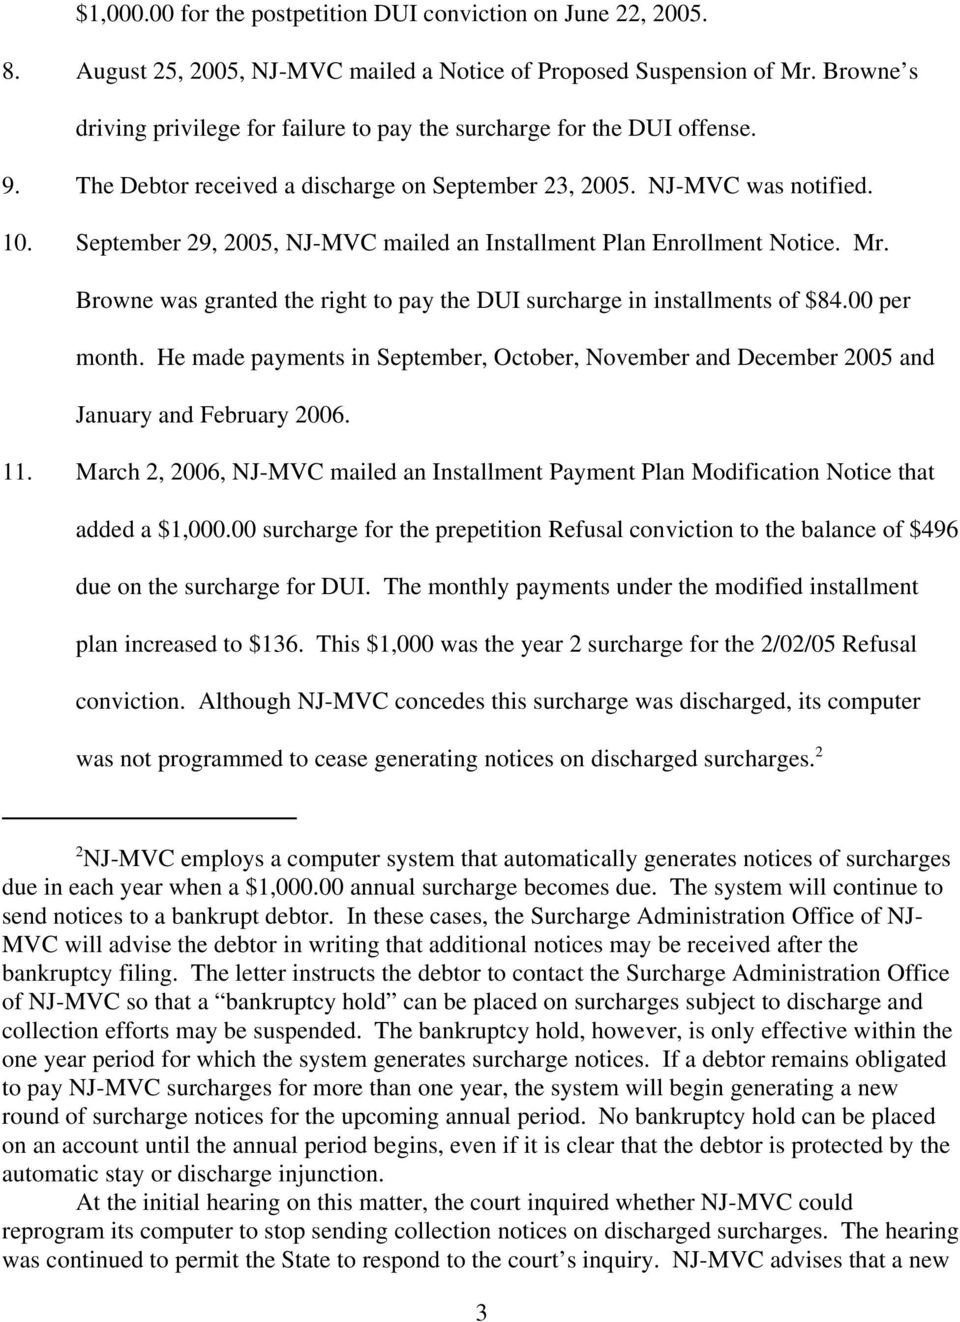 September 29, 2005, NJ-MVC mailed an Installment Plan Enrollment Notice. Mr. Browne was granted the right to pay the DUI surcharge in installments of $84.00 per month.